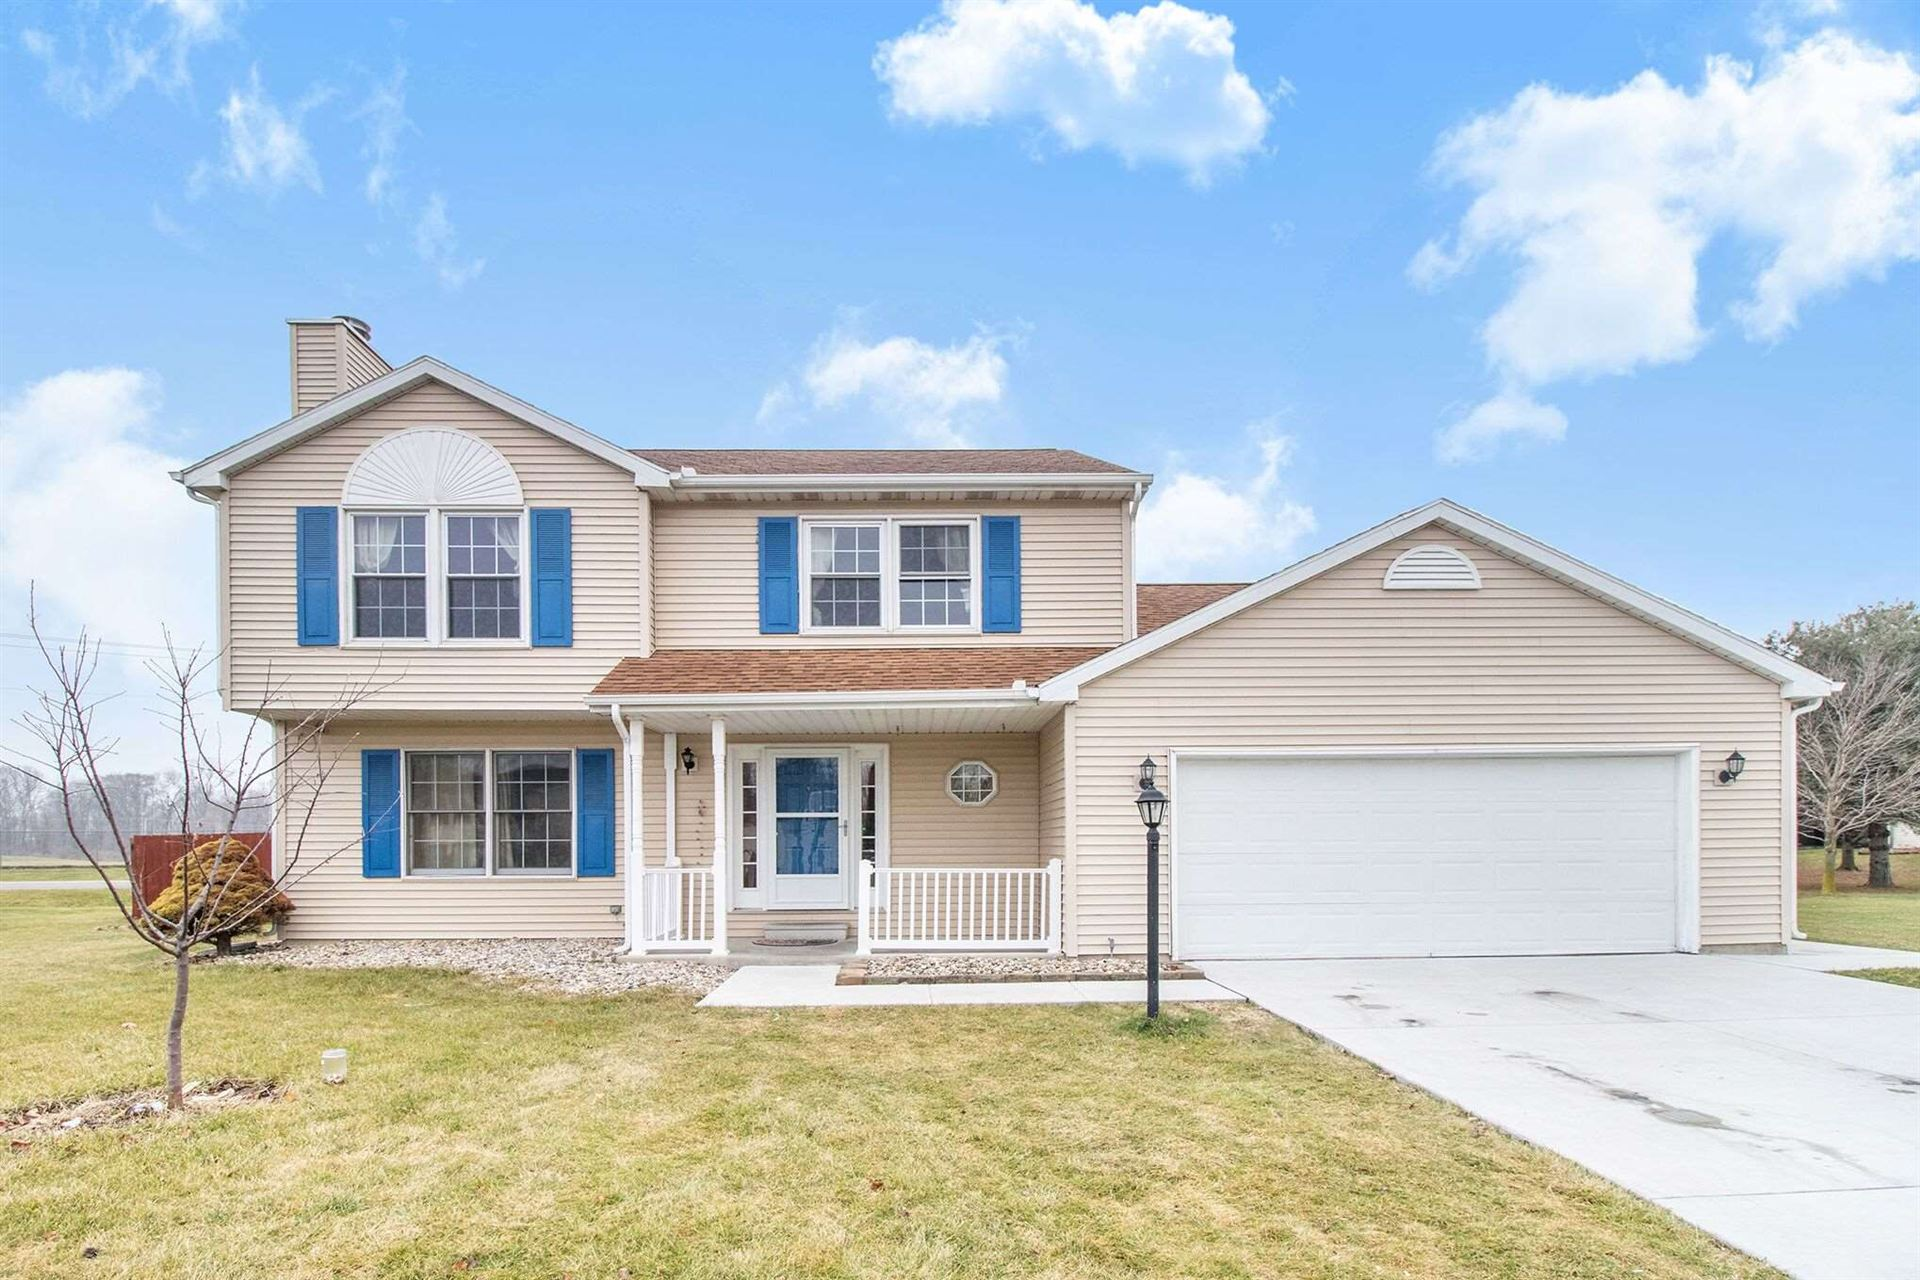 609 E Walden Court, South Bend, IN 46614 - #: 202001832